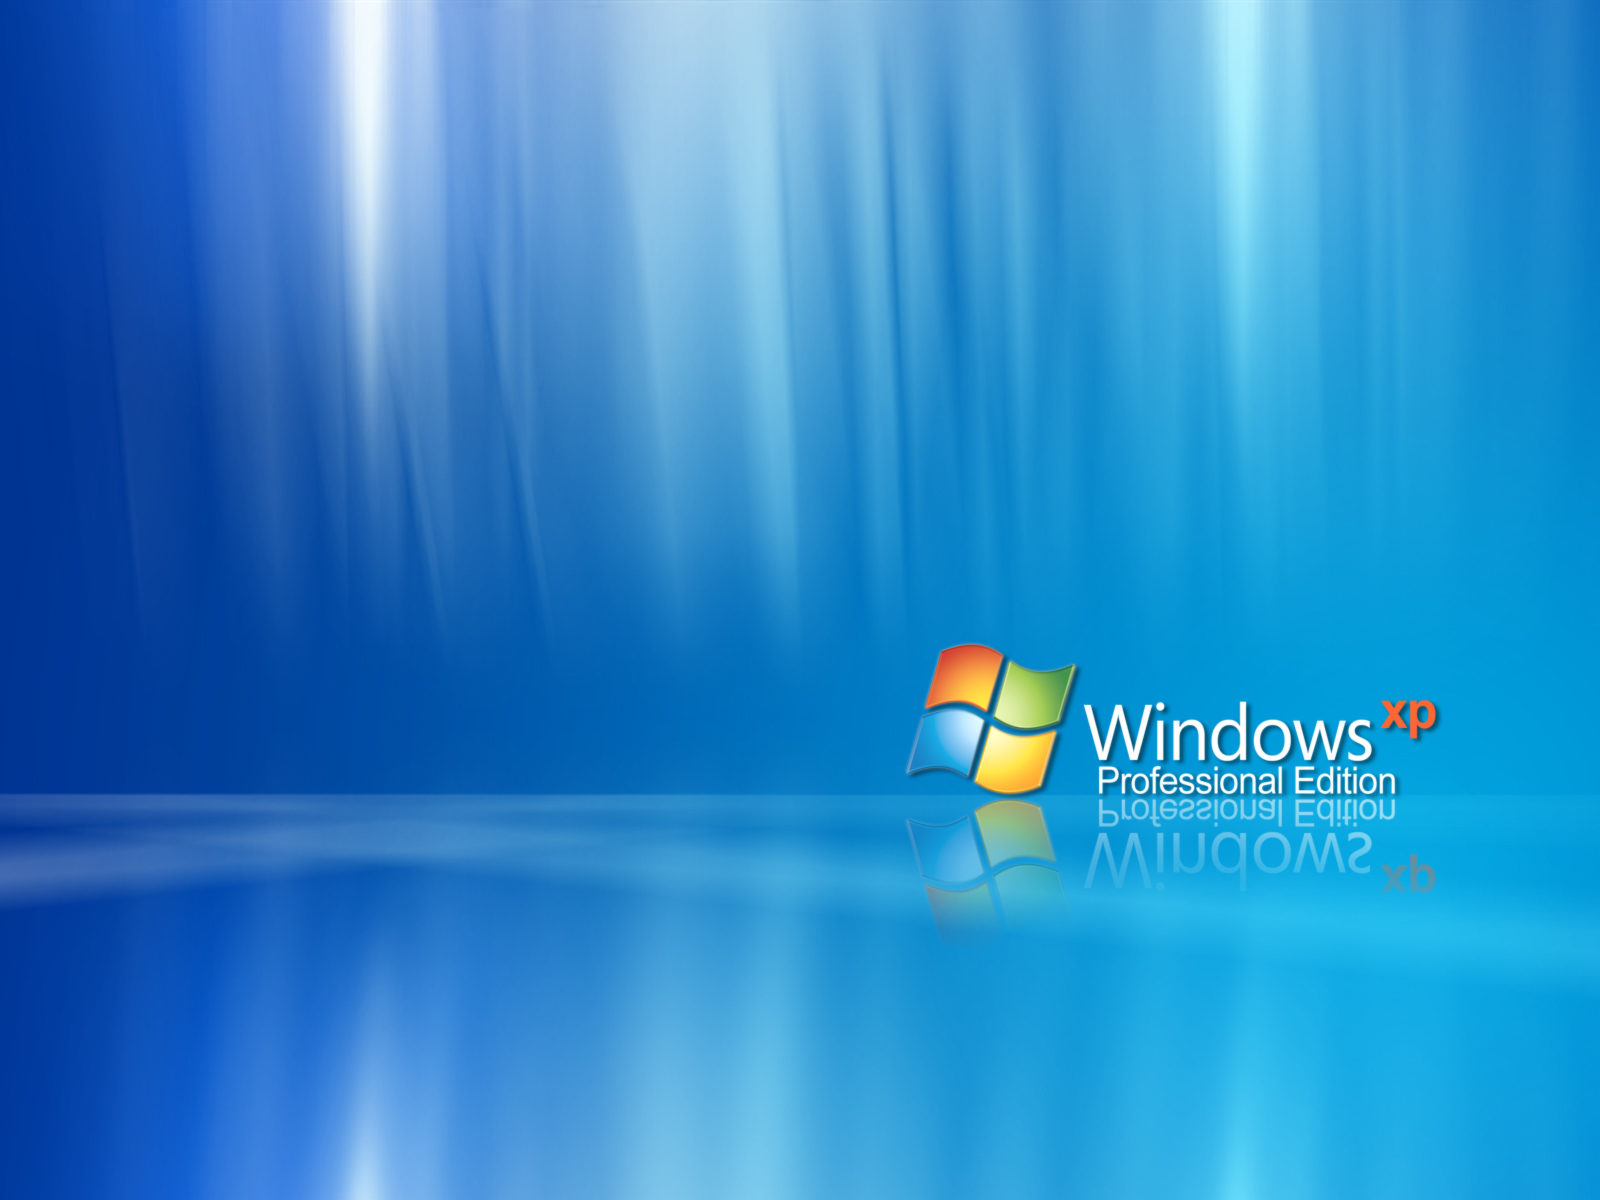 windows xp desktop background 1